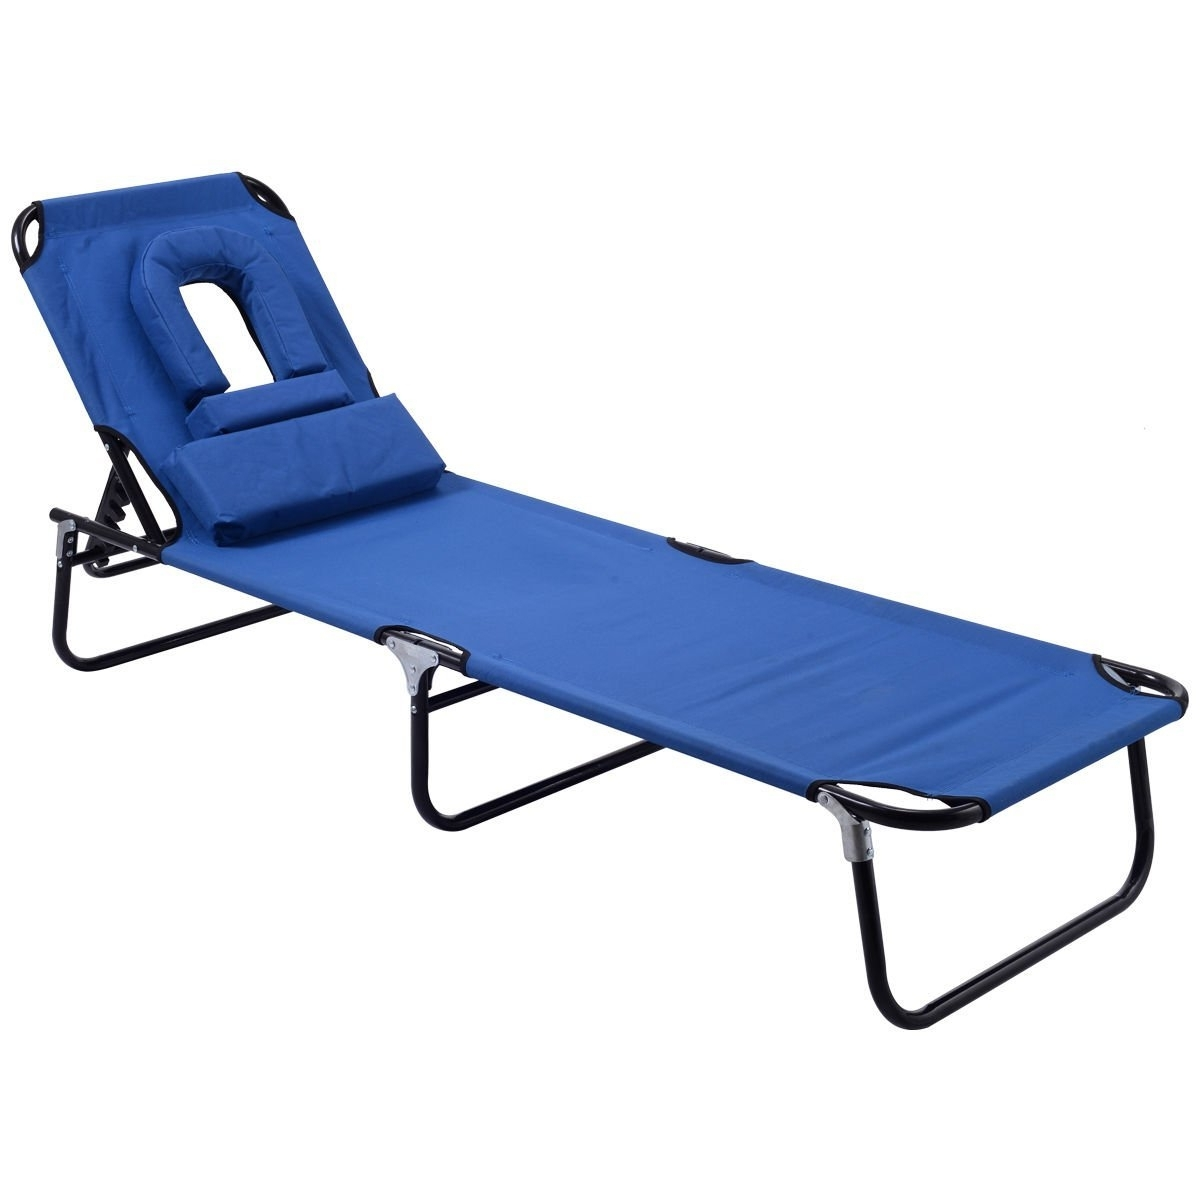 Amazon: Goplus Folding Chaise Lounge Chair Bed Outdoor Patio In Latest Lounge Chaise Chair By Ostrich (View 9 of 15)